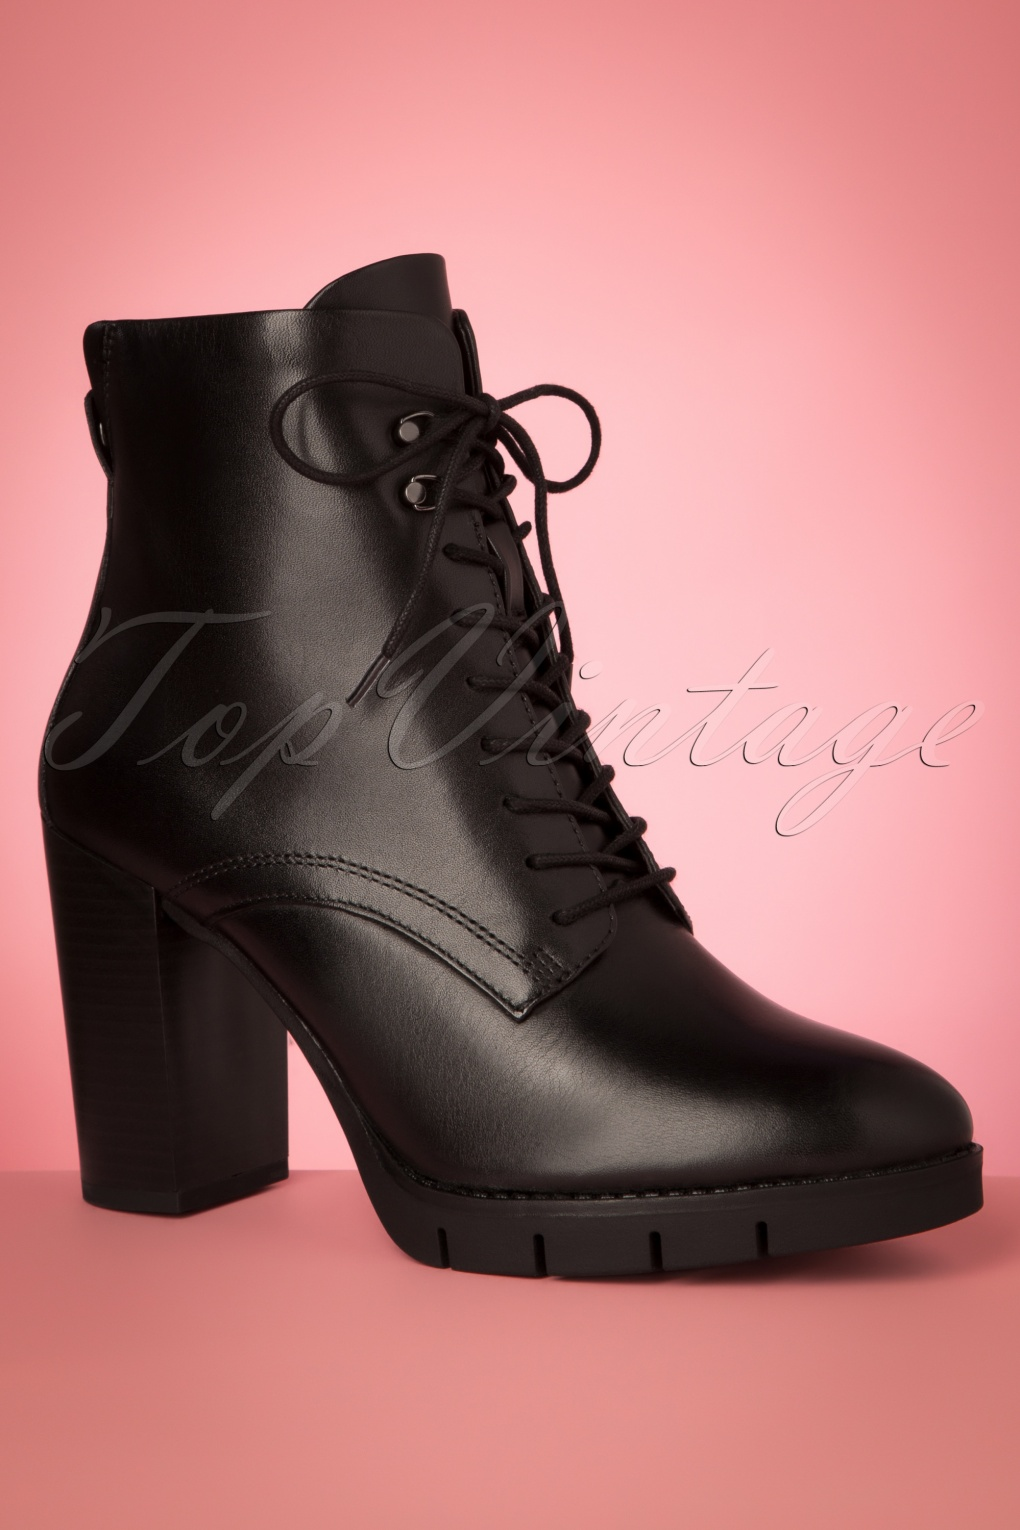 Pin Up Shoes- Heels, Pumps & Flats 50s Lorena Lace Up Leather Booties in Black £81.11 AT vintagedancer.com